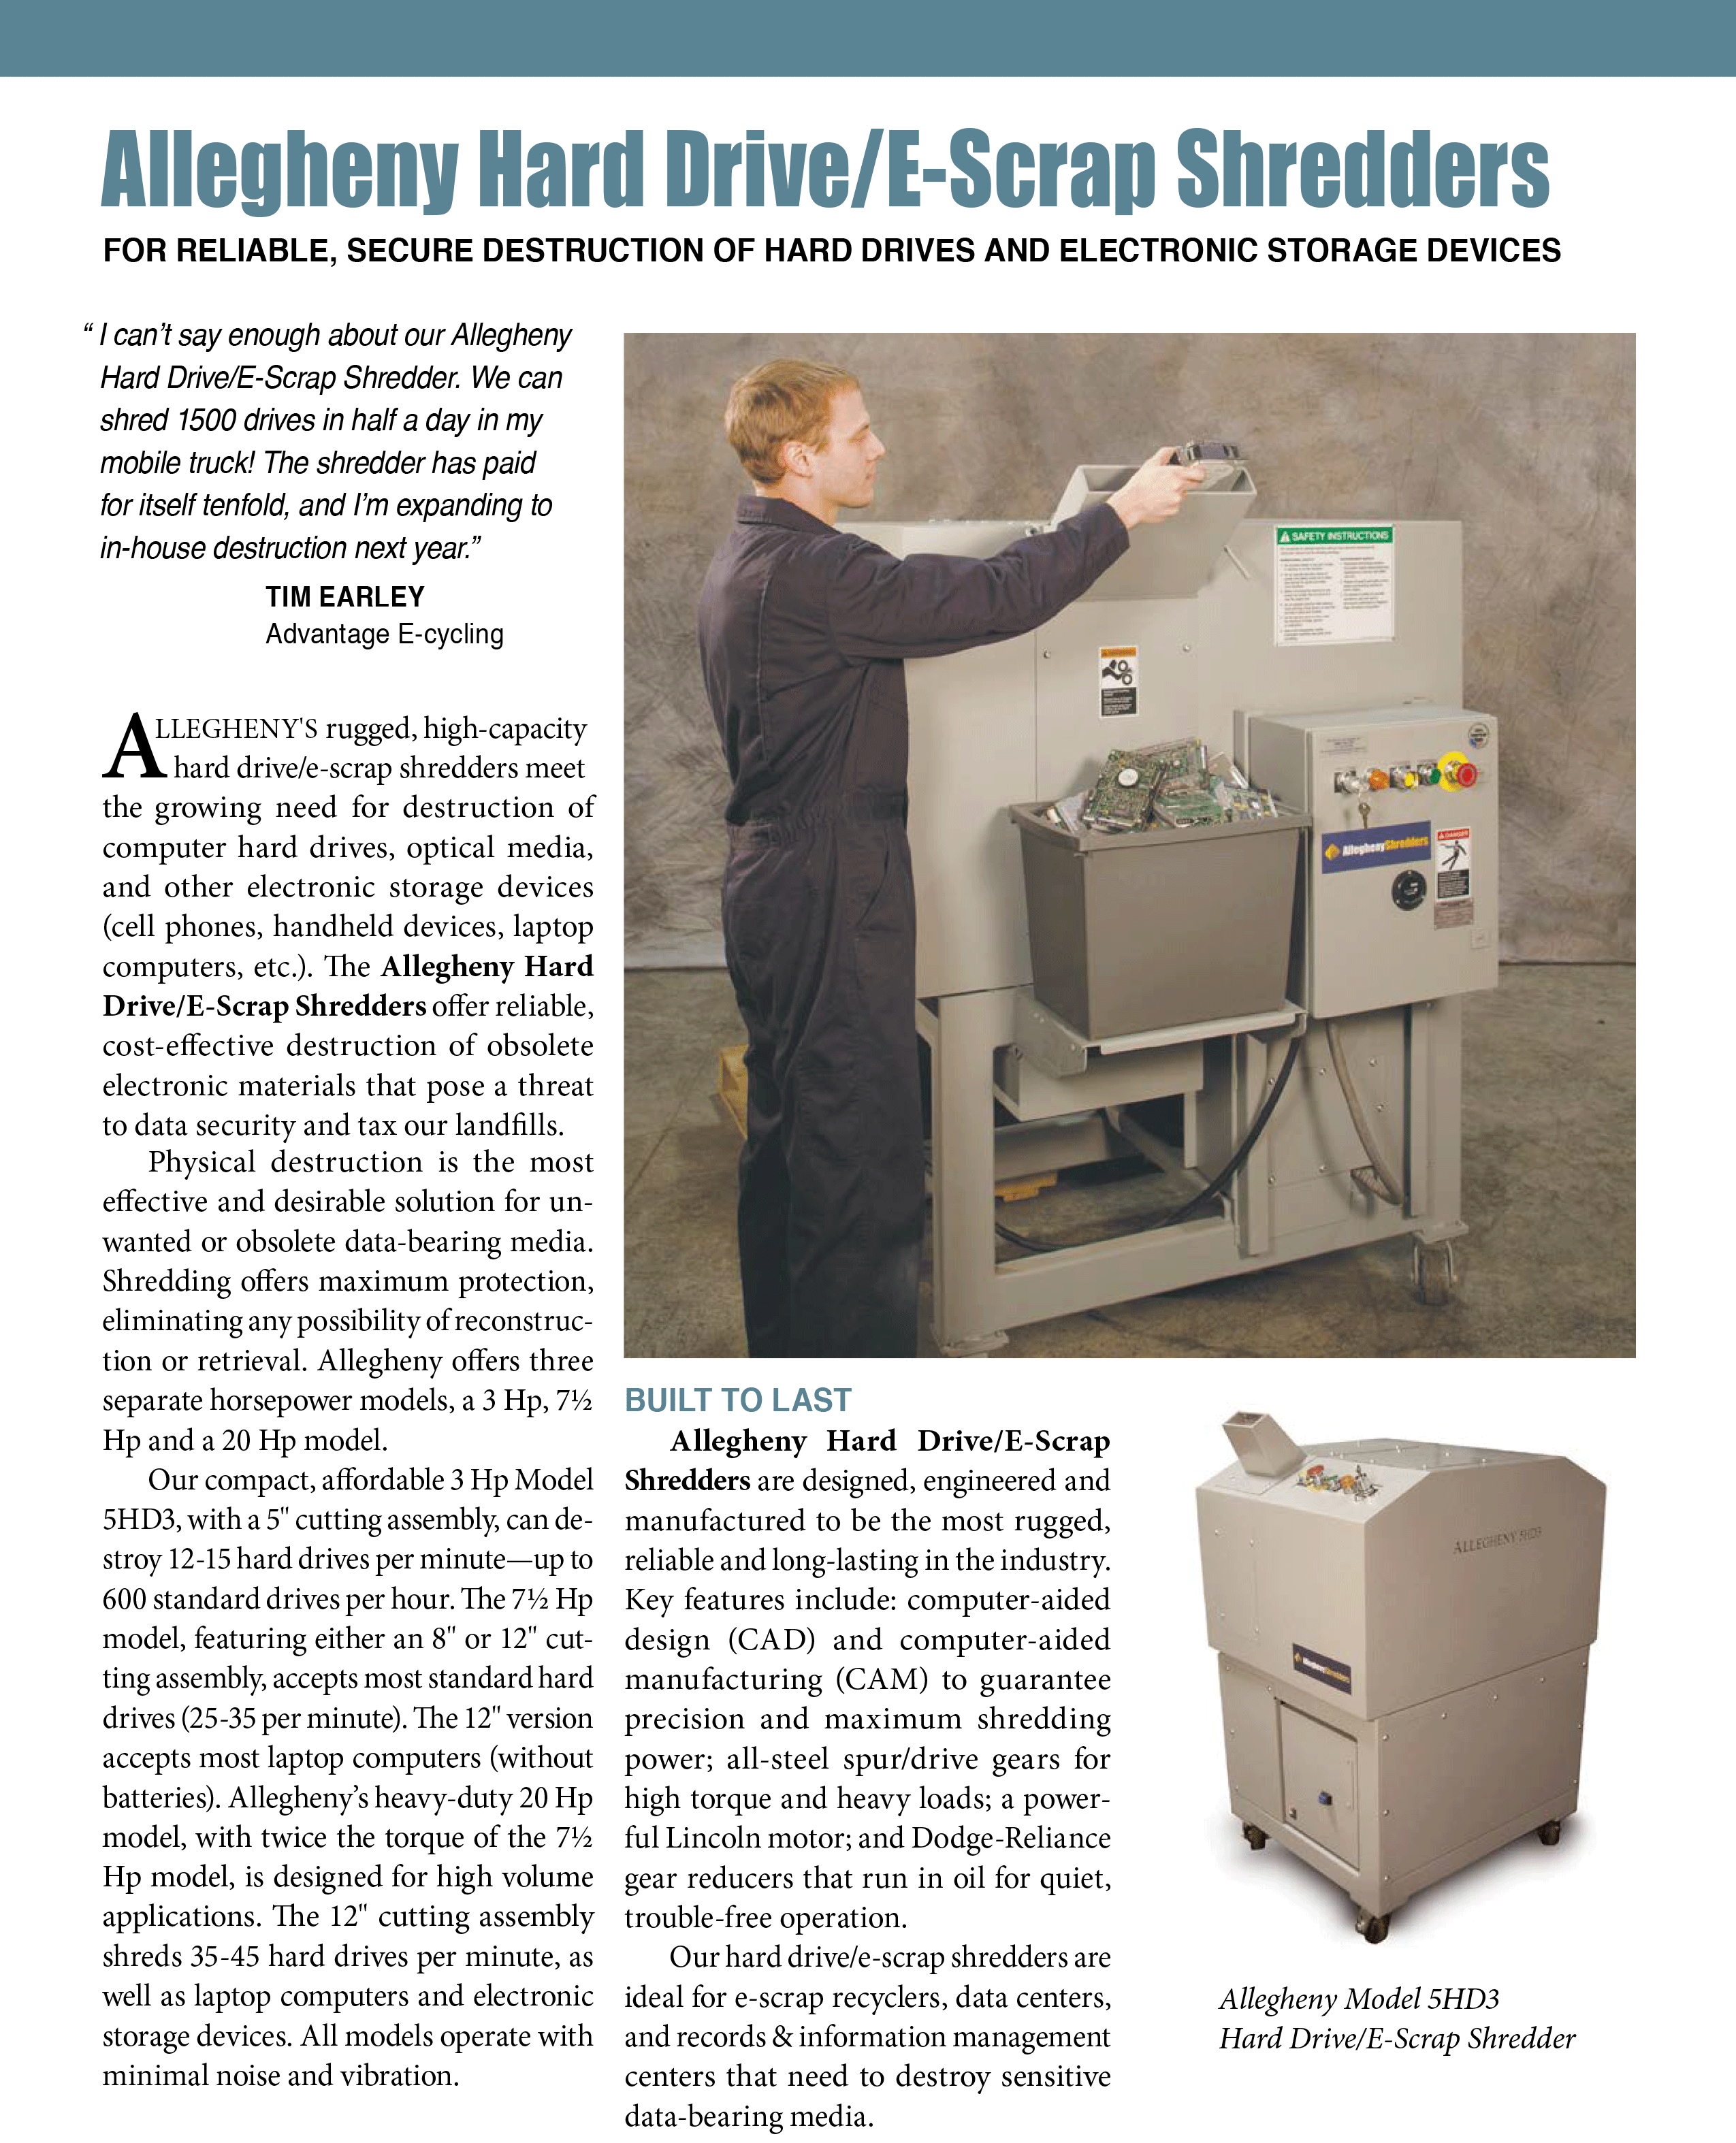 Learn more about Hard Drive/E-Scrap Shredders in the Allegheny Brochure.